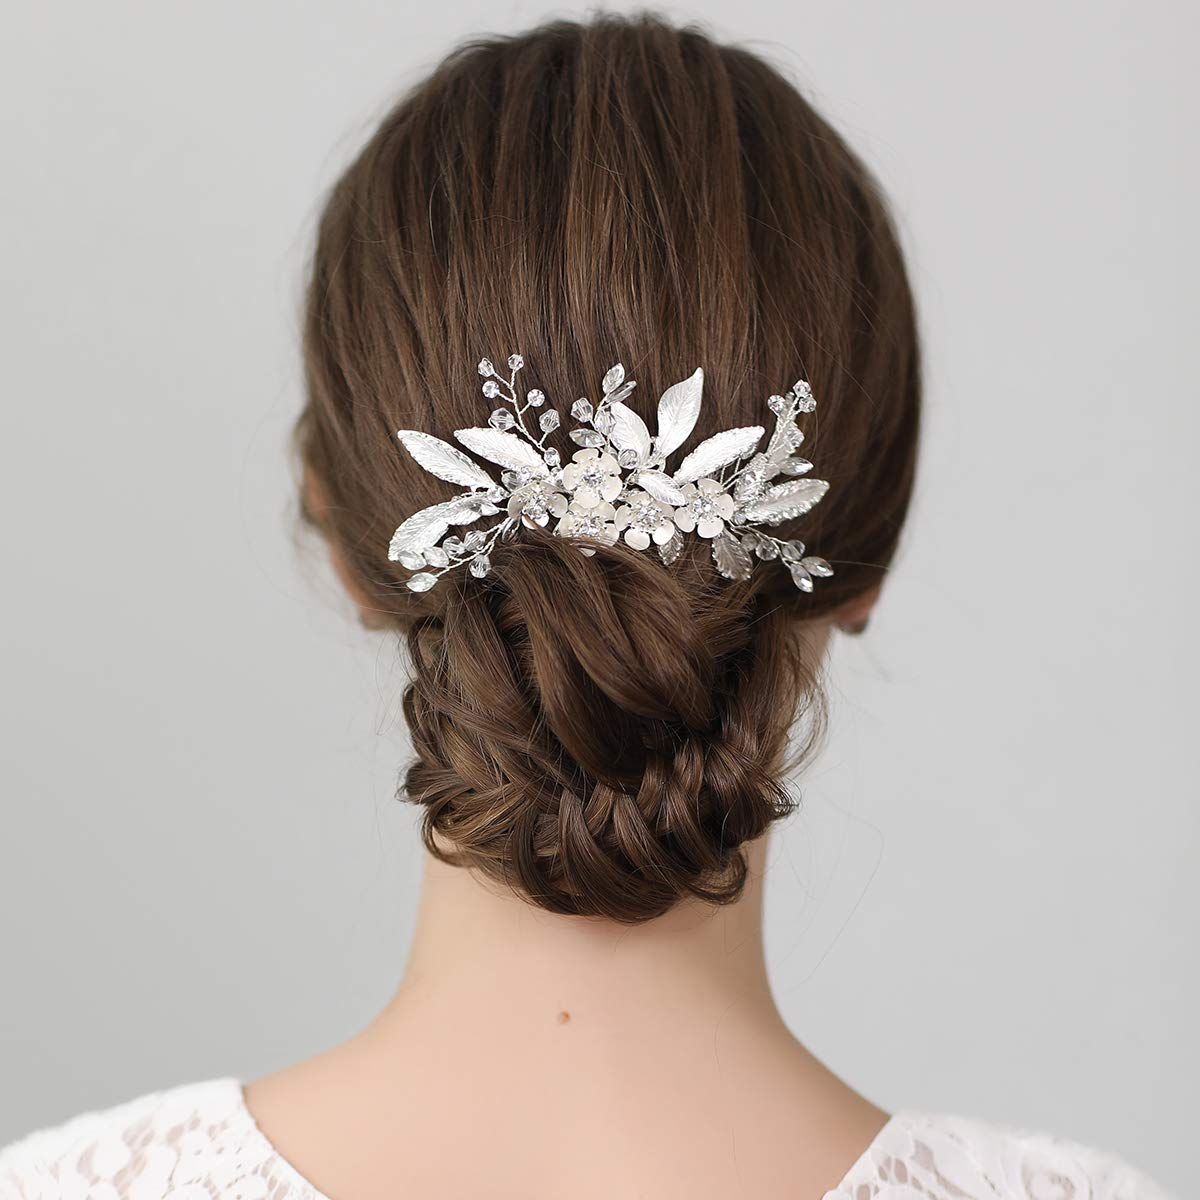 SWEETV Bridal Leaf Hair Comb Clip Silver Wedding Hair Accessories for Brides Wedding by SWEETV